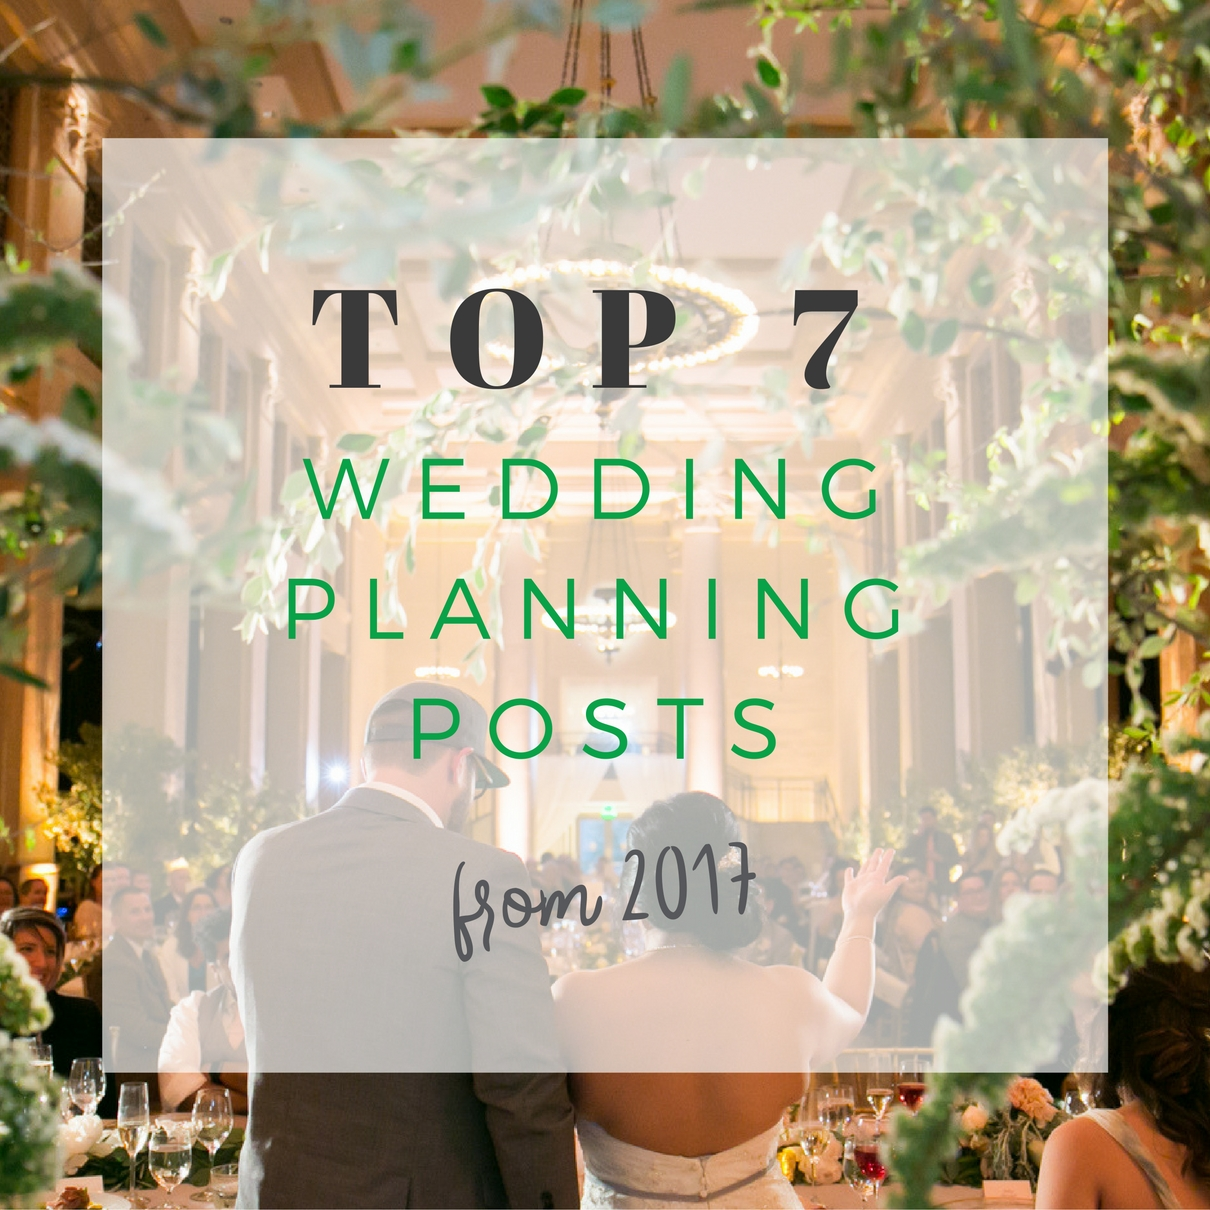 Top 7 wedding planning posts of 2017 mango muse events for Destination wedding planning guide